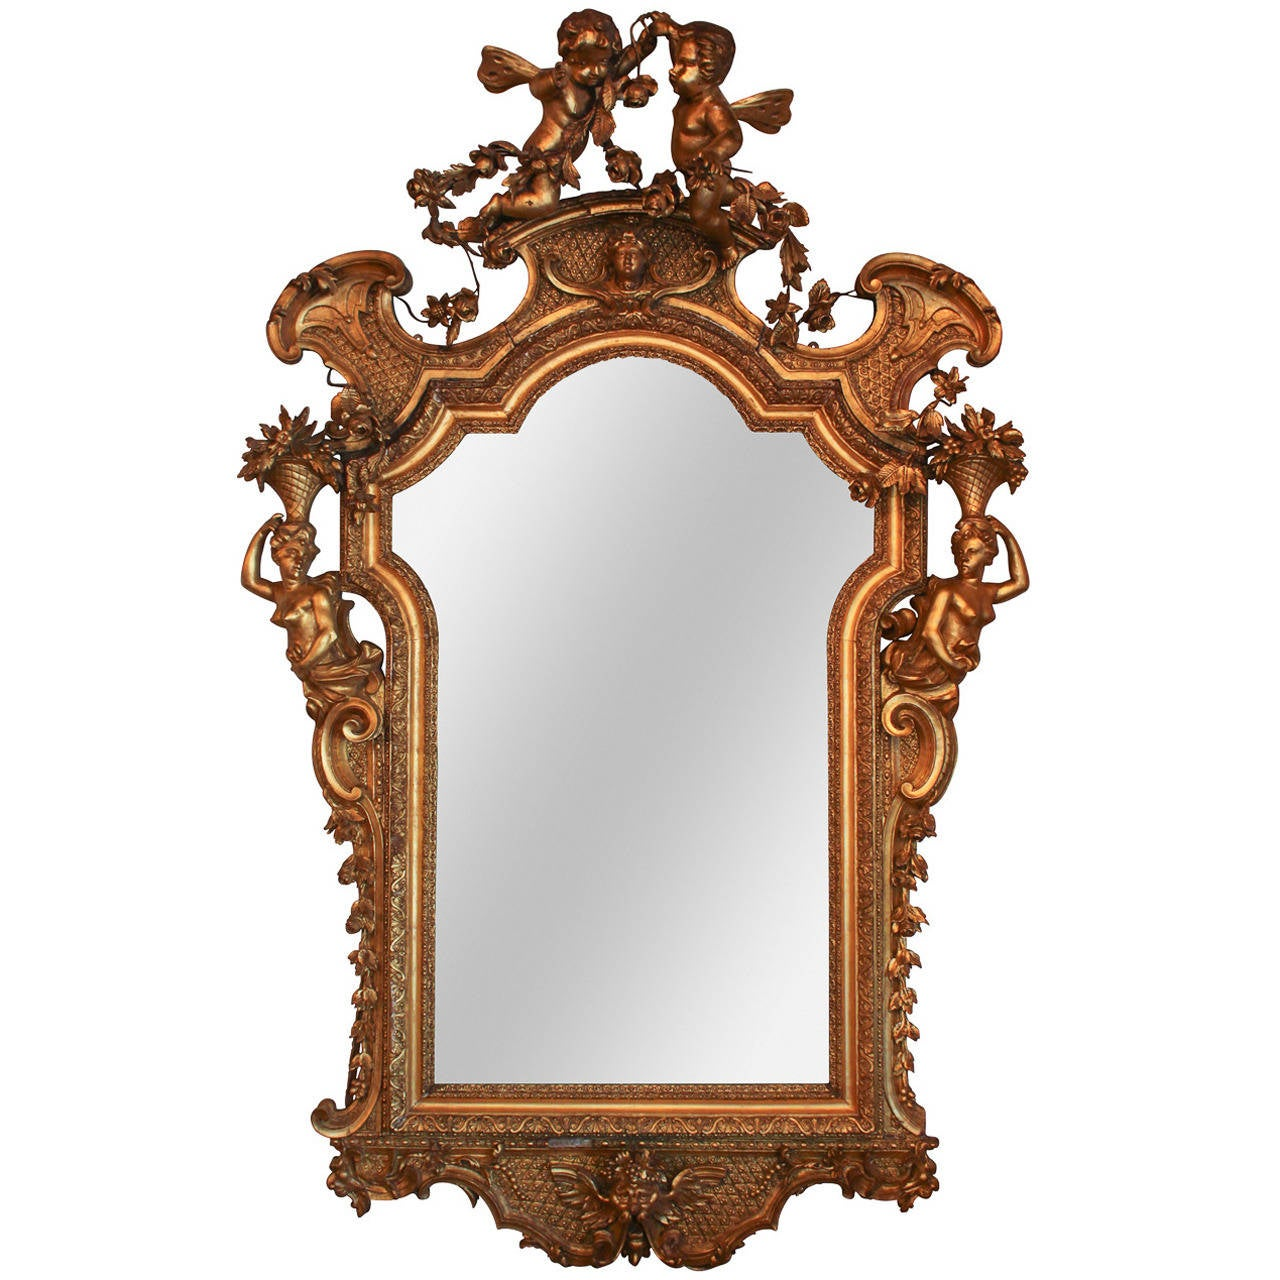 Rare 19th c french rococo giltwood cherub mirror for sale for French mirror